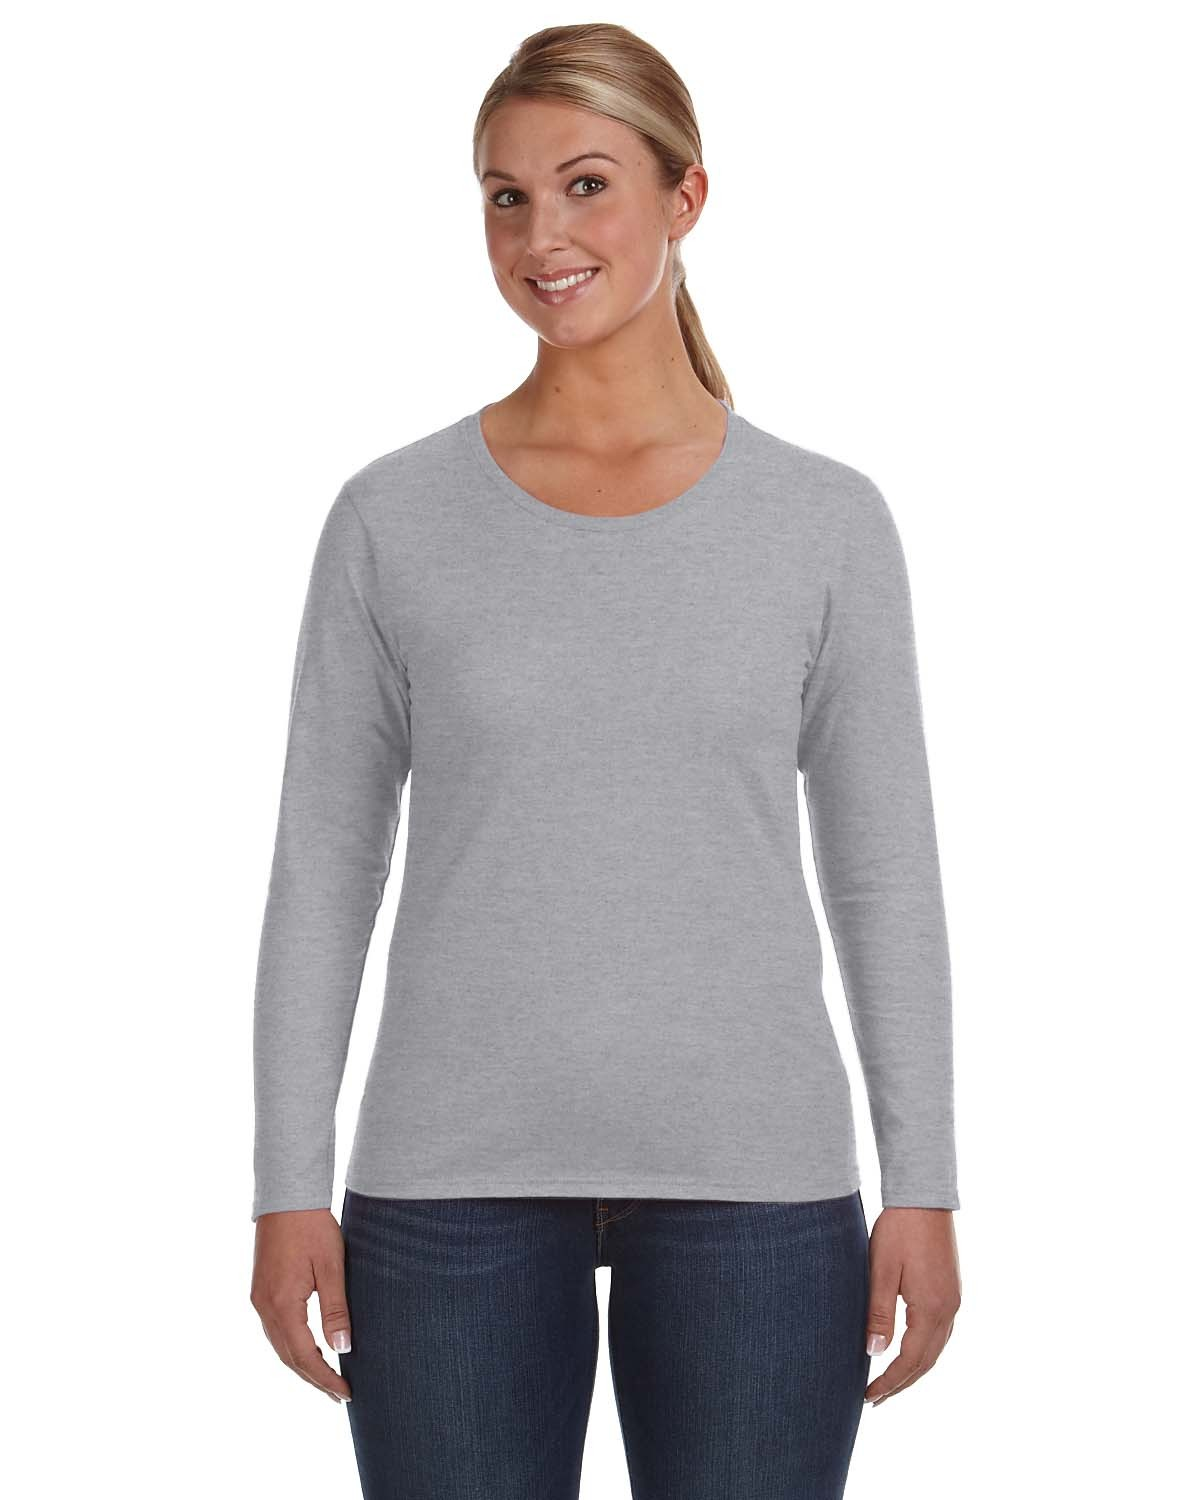 884L Anvil HEATHER GREY